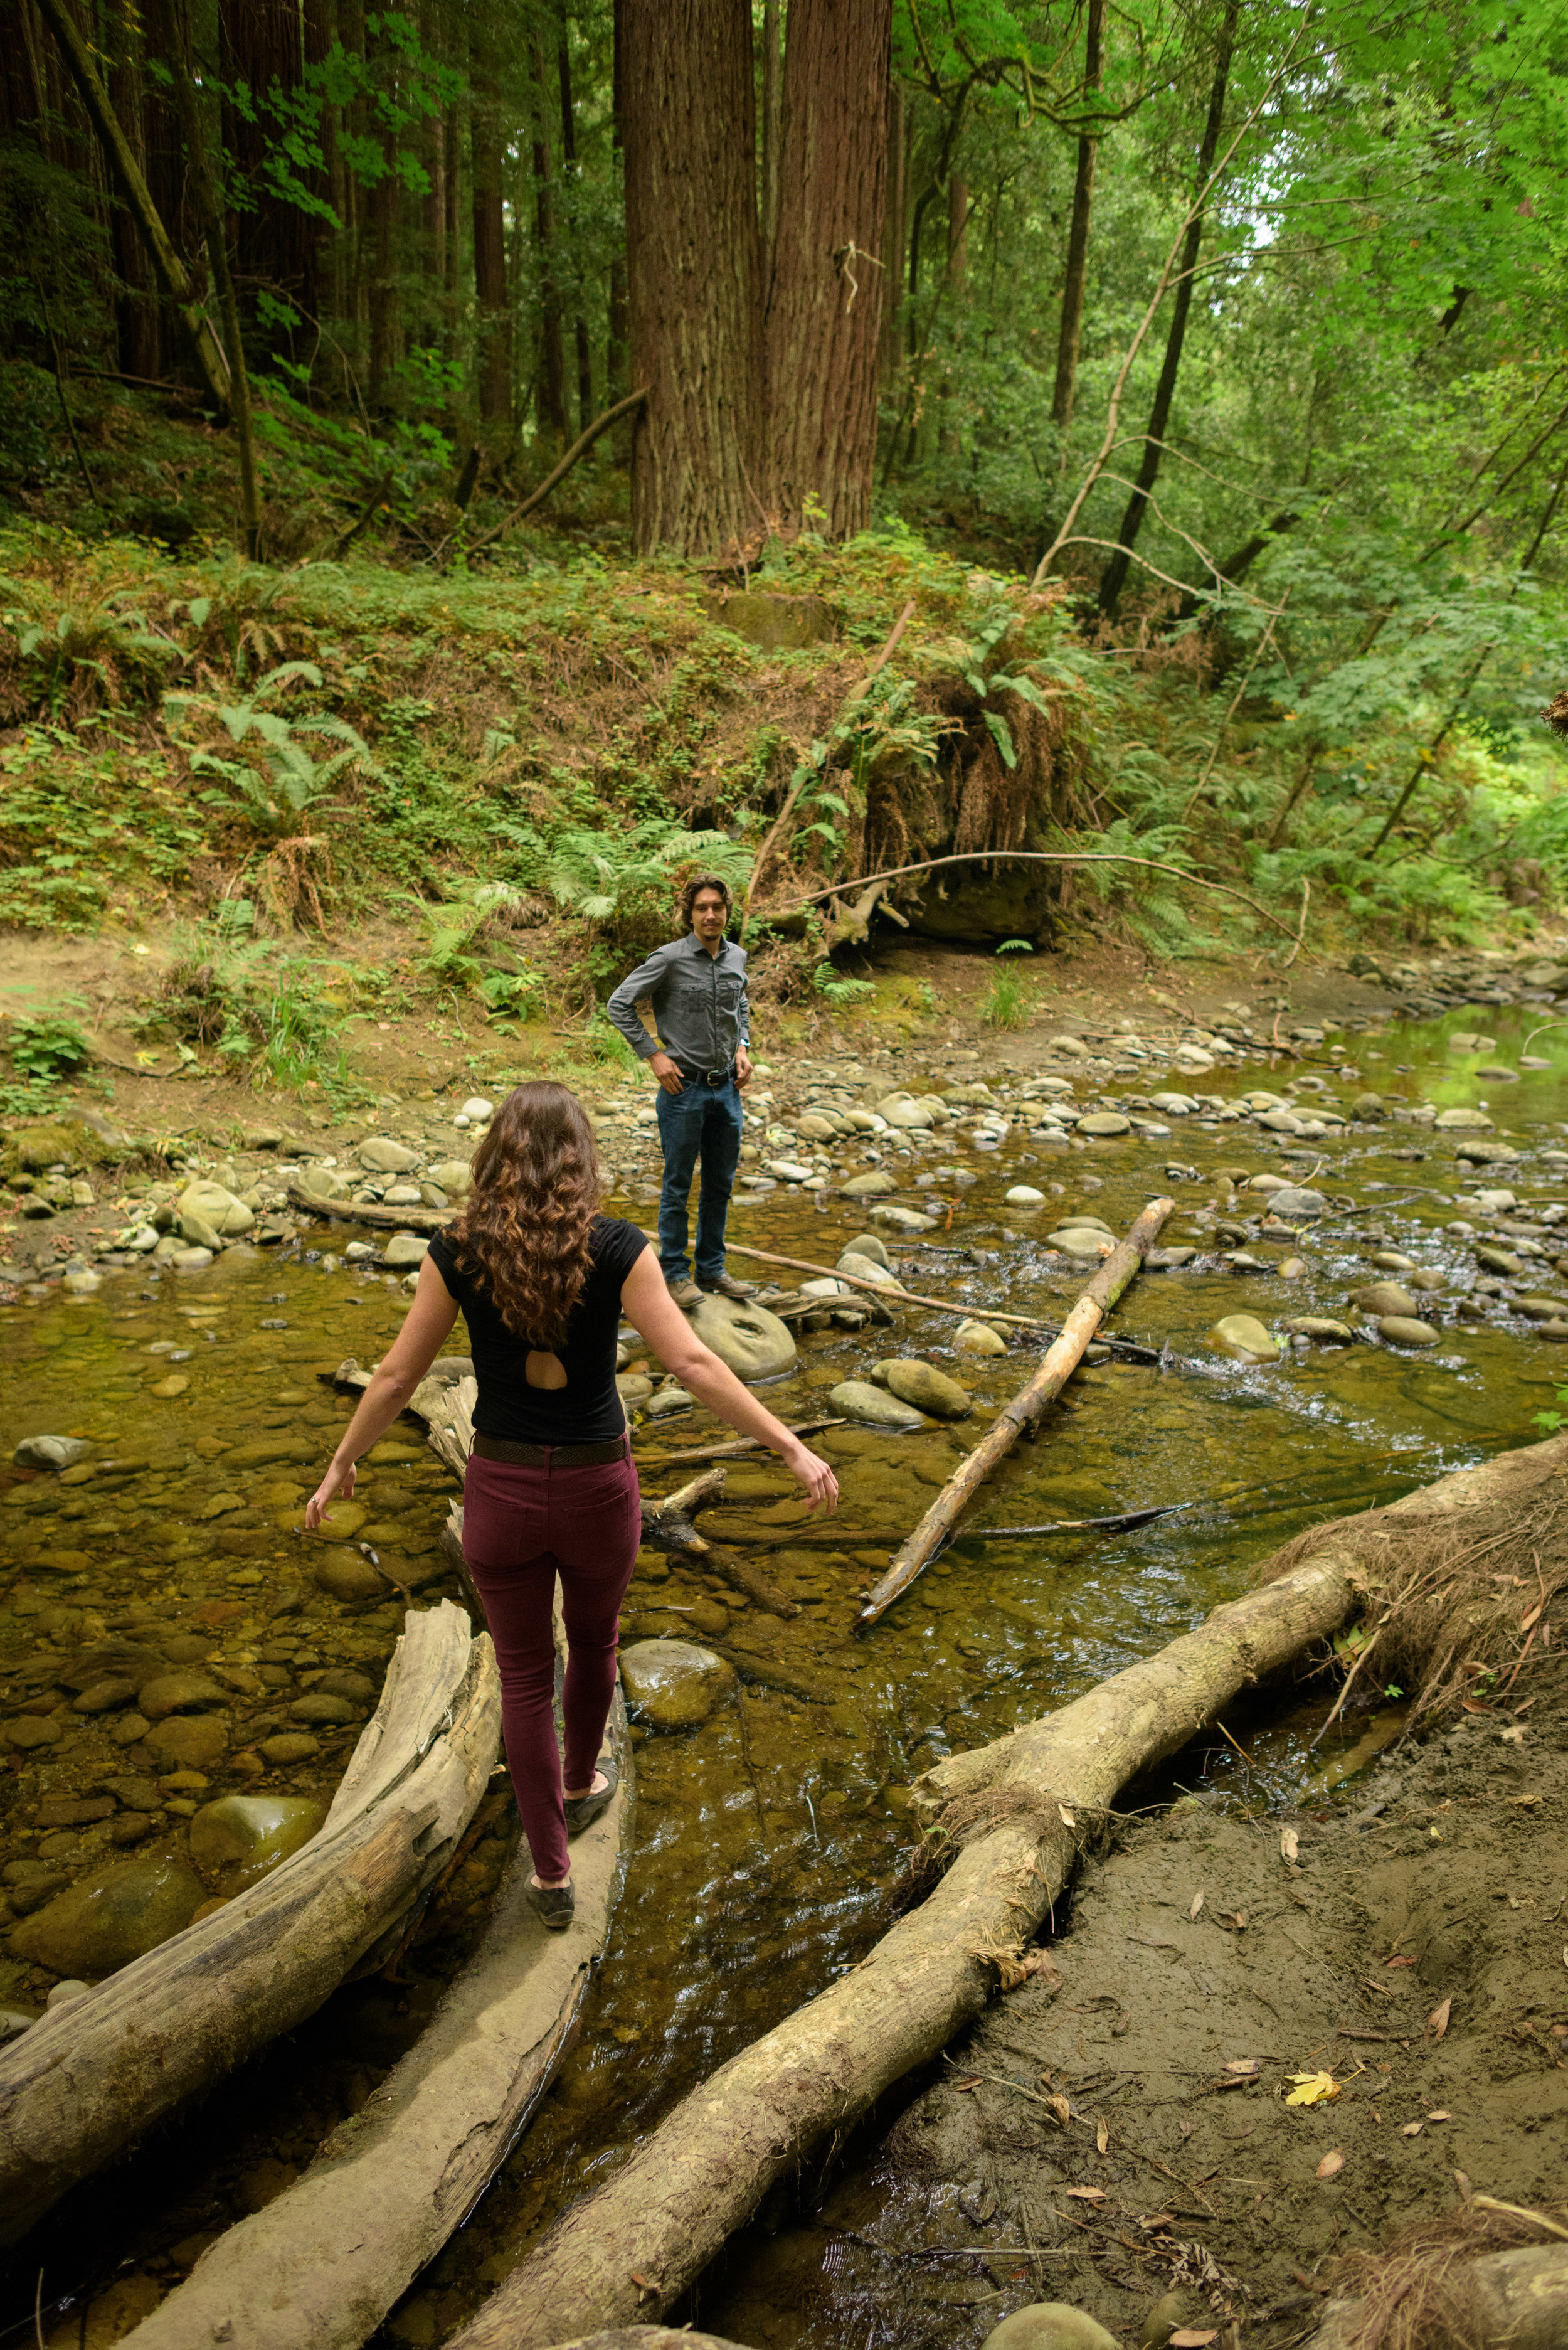 Couple walking away from camera on fallen trees across the creek - Engagement Photos in Nisene Marks Forest in Aptos, CA - by Bay Area wedding photographer Chris Schmauch